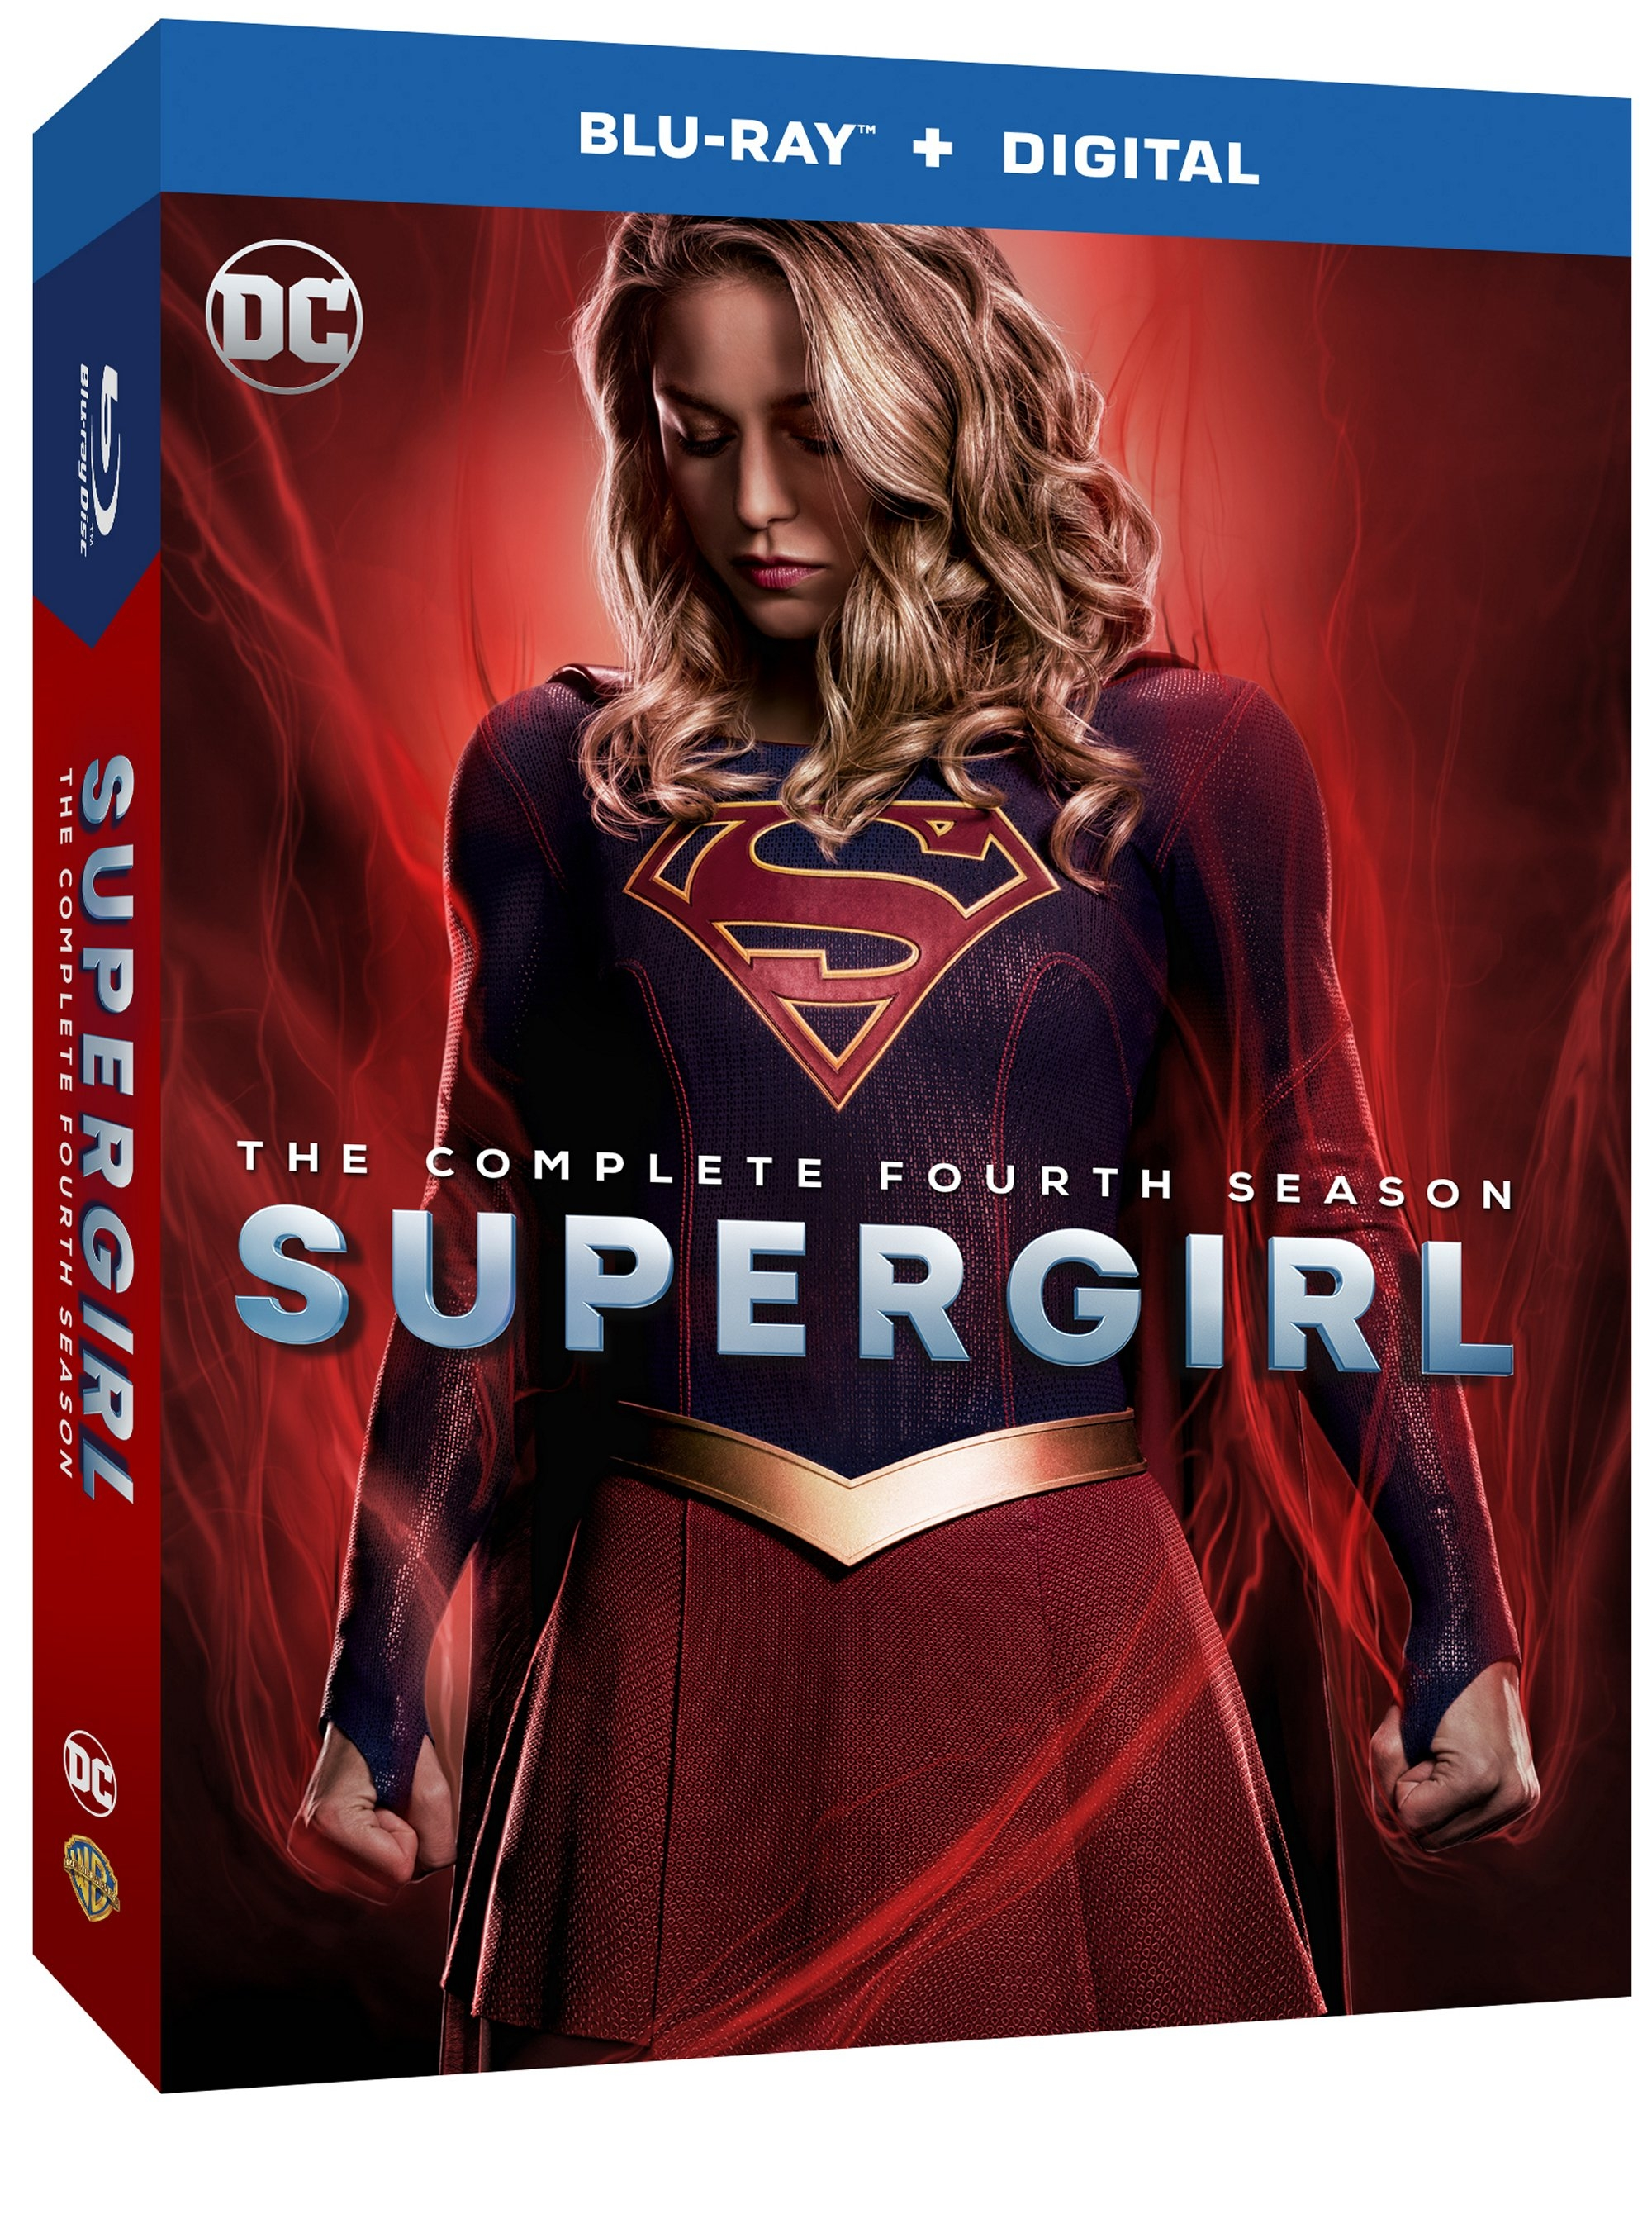 SUPERGIRL: THE COMPLETE FOURTH SEASON Arrives on Blu-ray